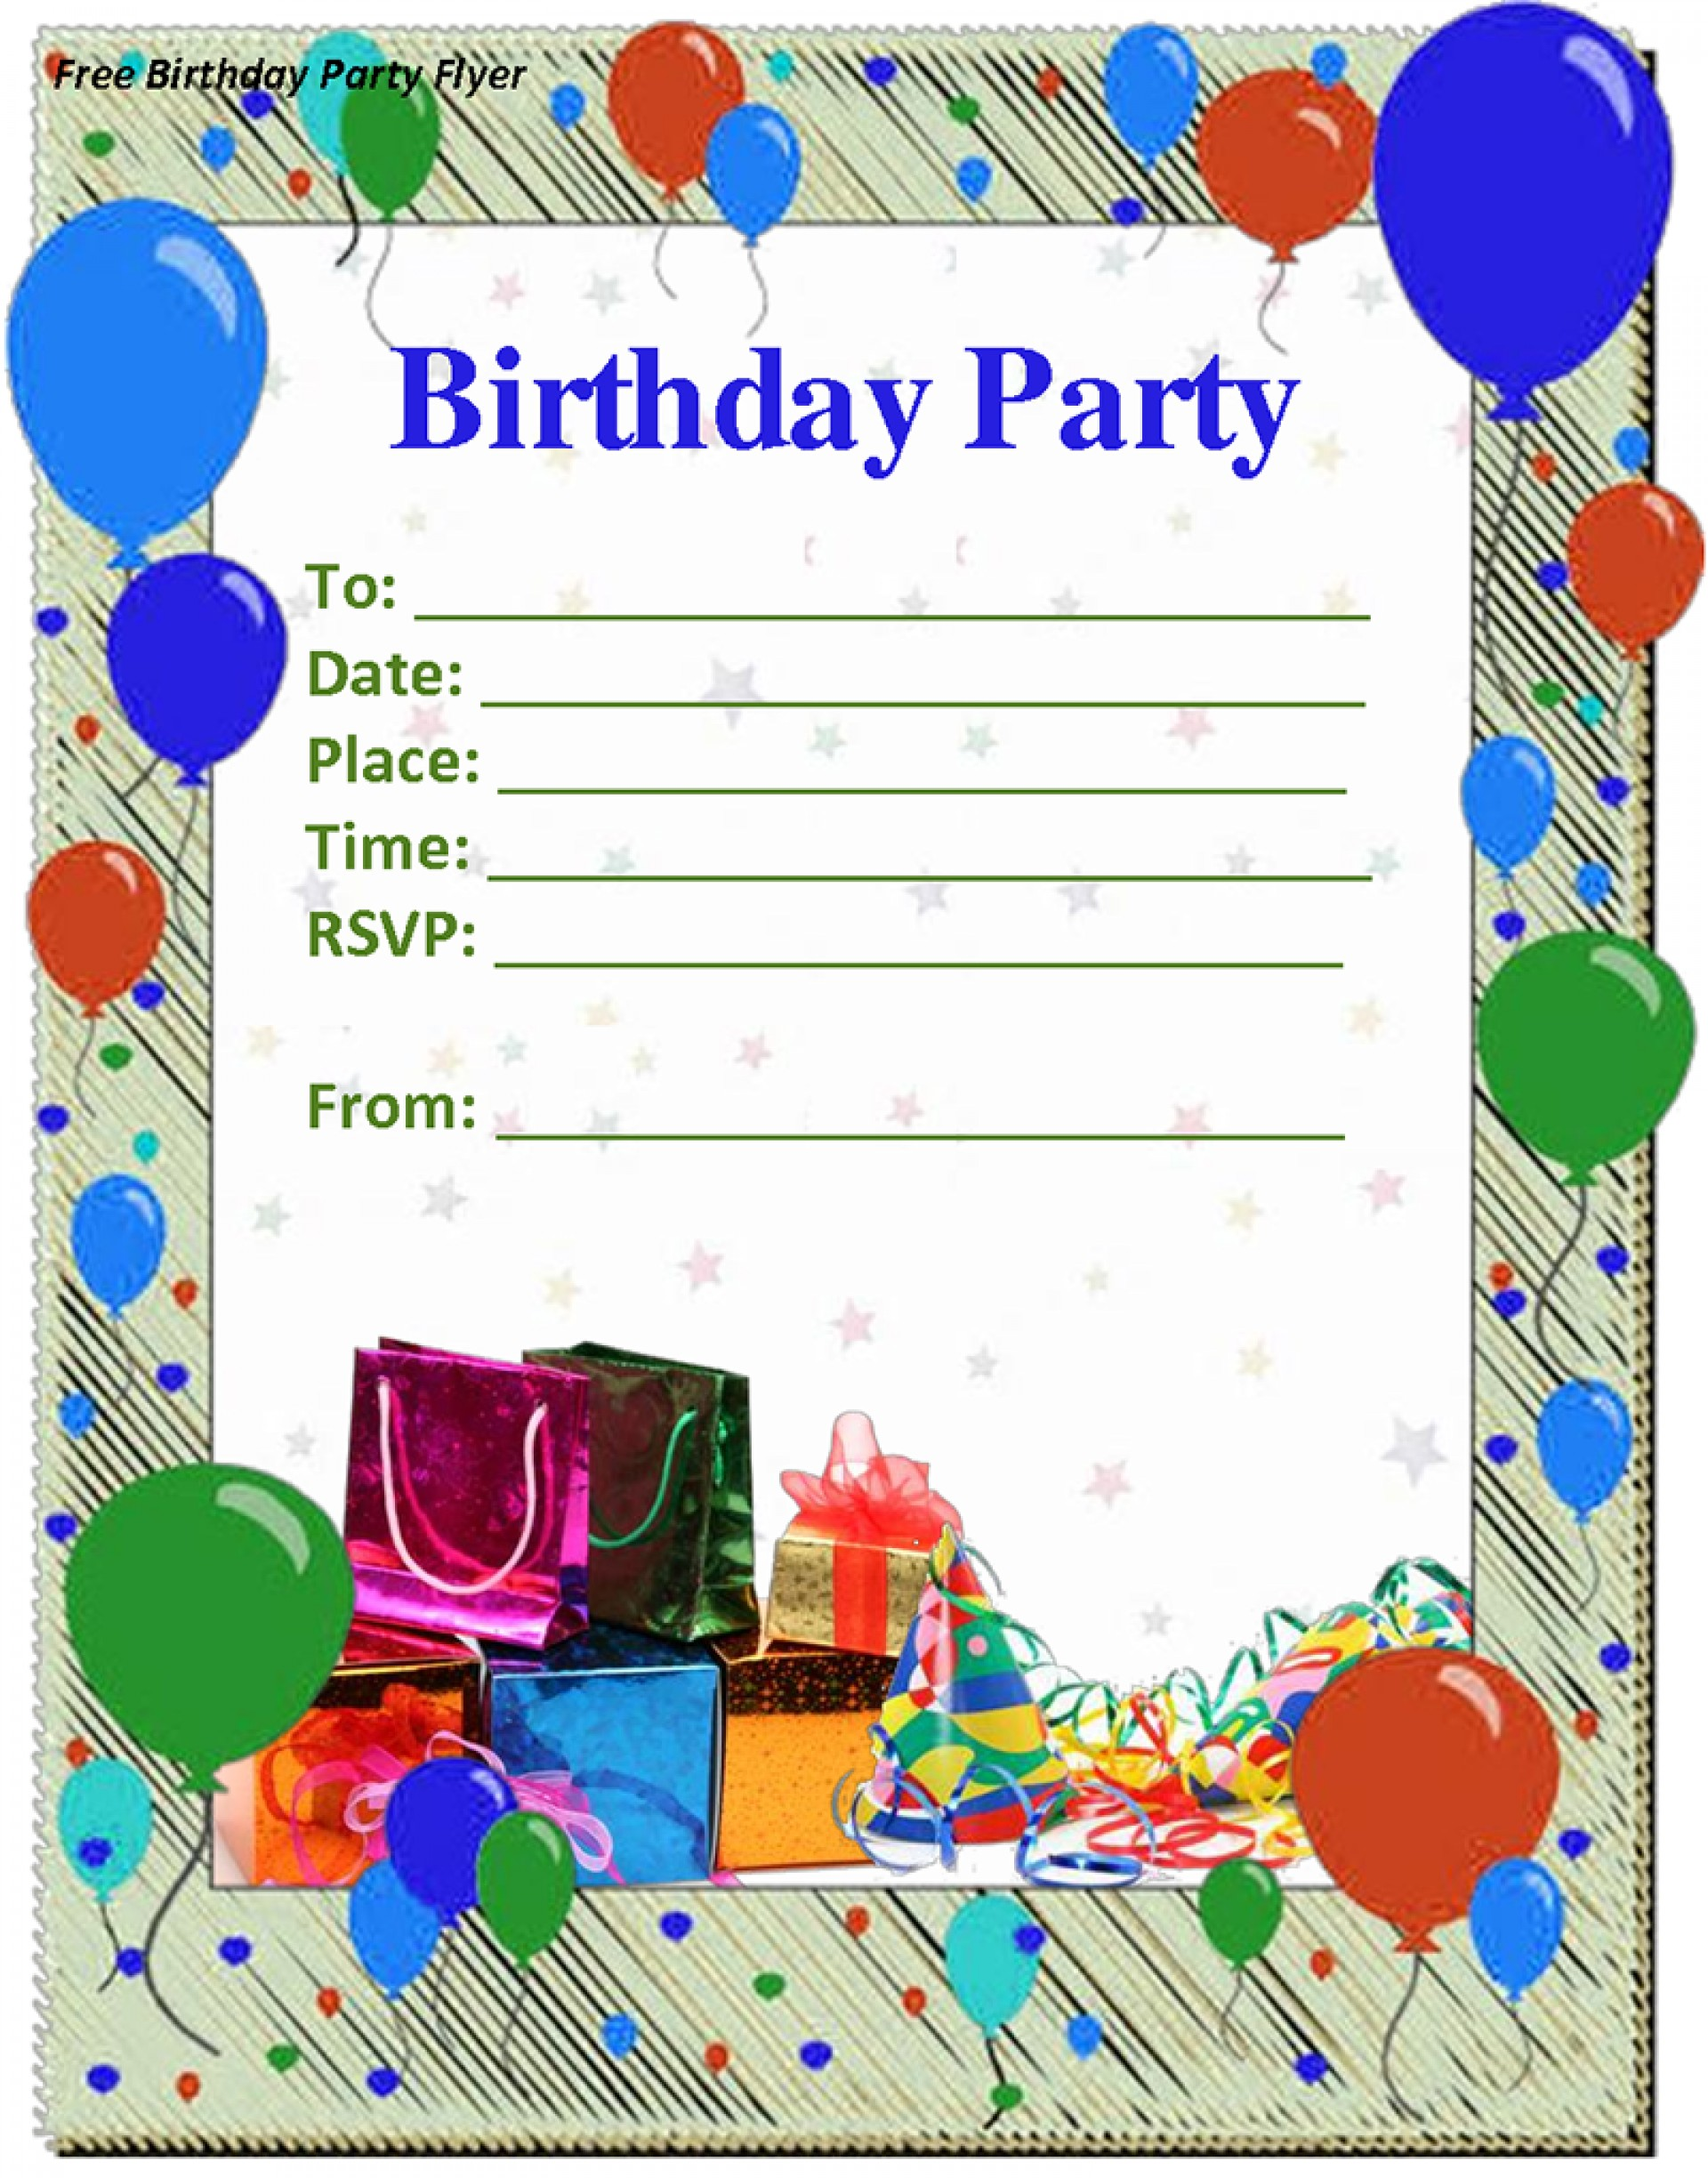 Word Editable Birthday Invitations Templates Free